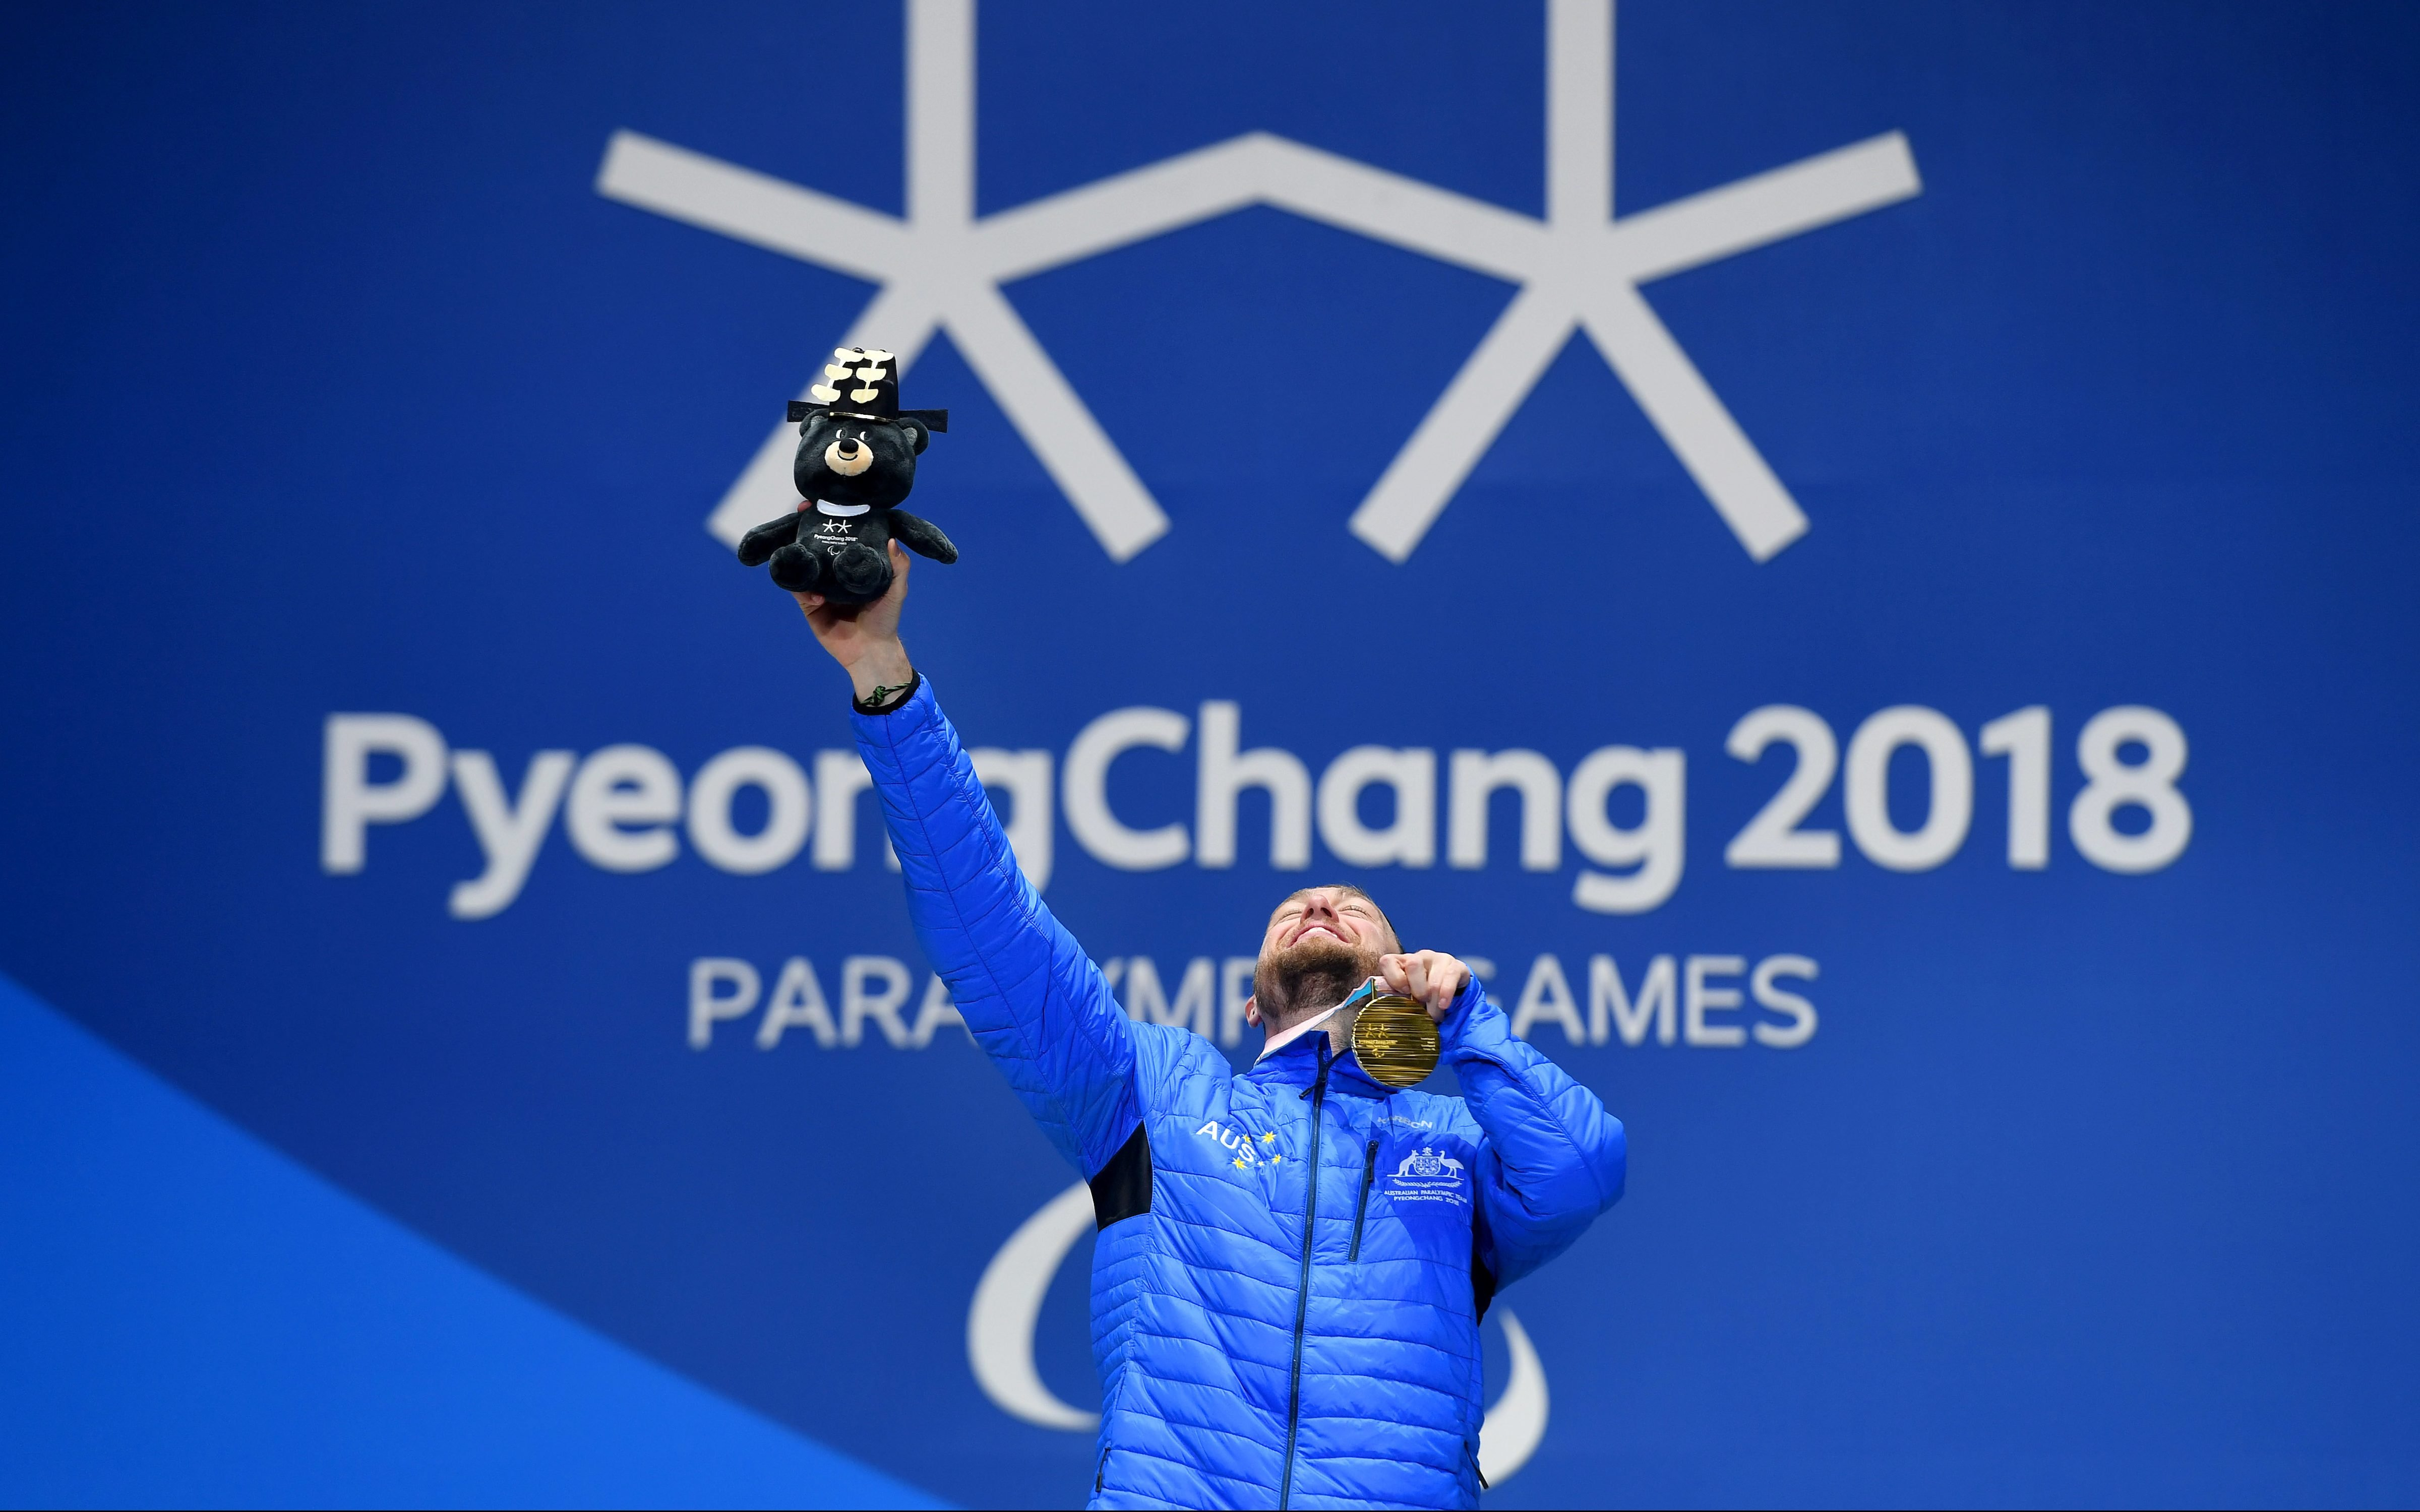 Targets reached in PyeongChang, now for Beijing 2022